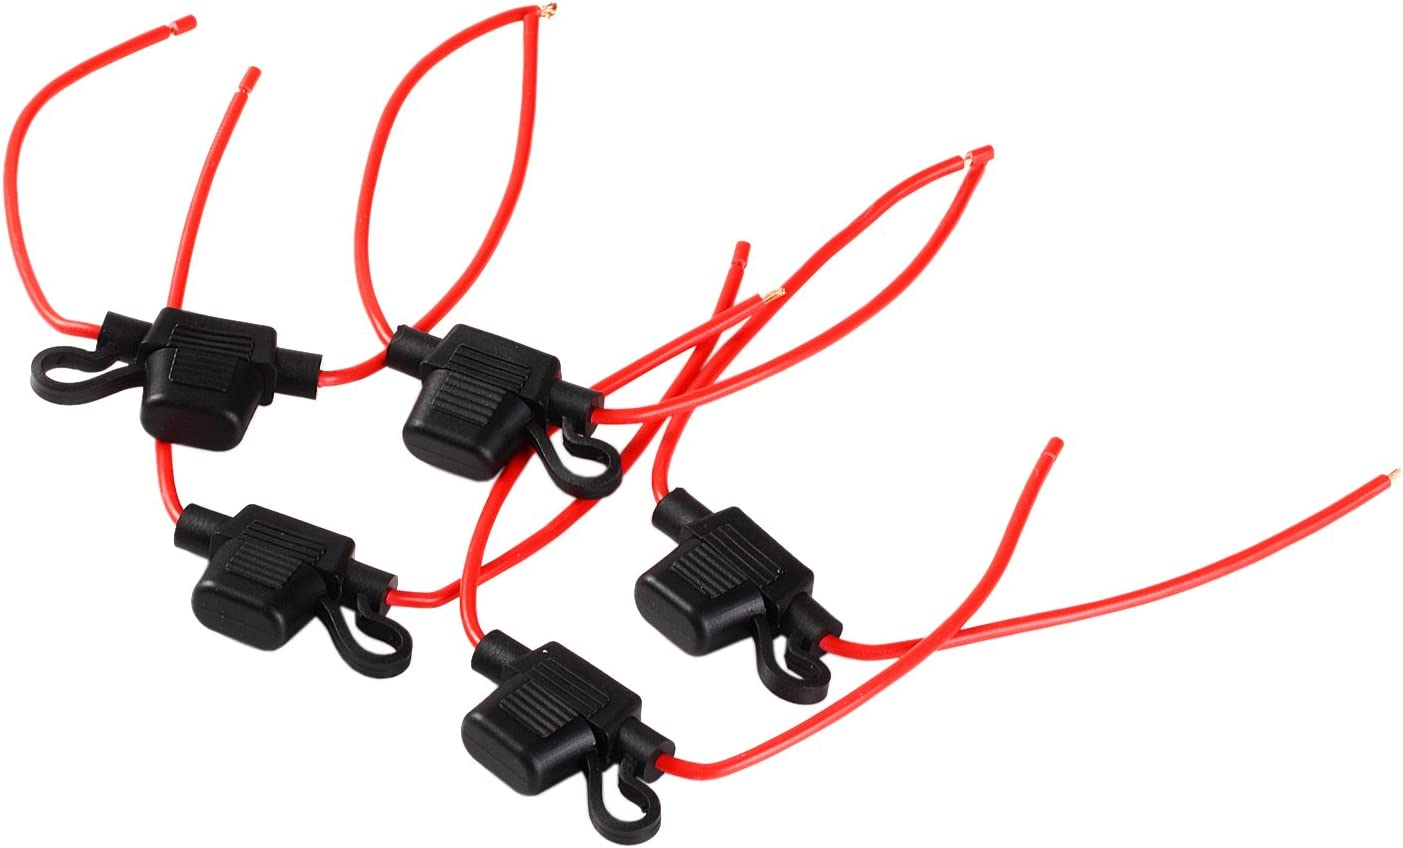 5 x LFM ATC FUSE HOLDER 12 G RED WIRE AND BLACK FUSE HOLDER